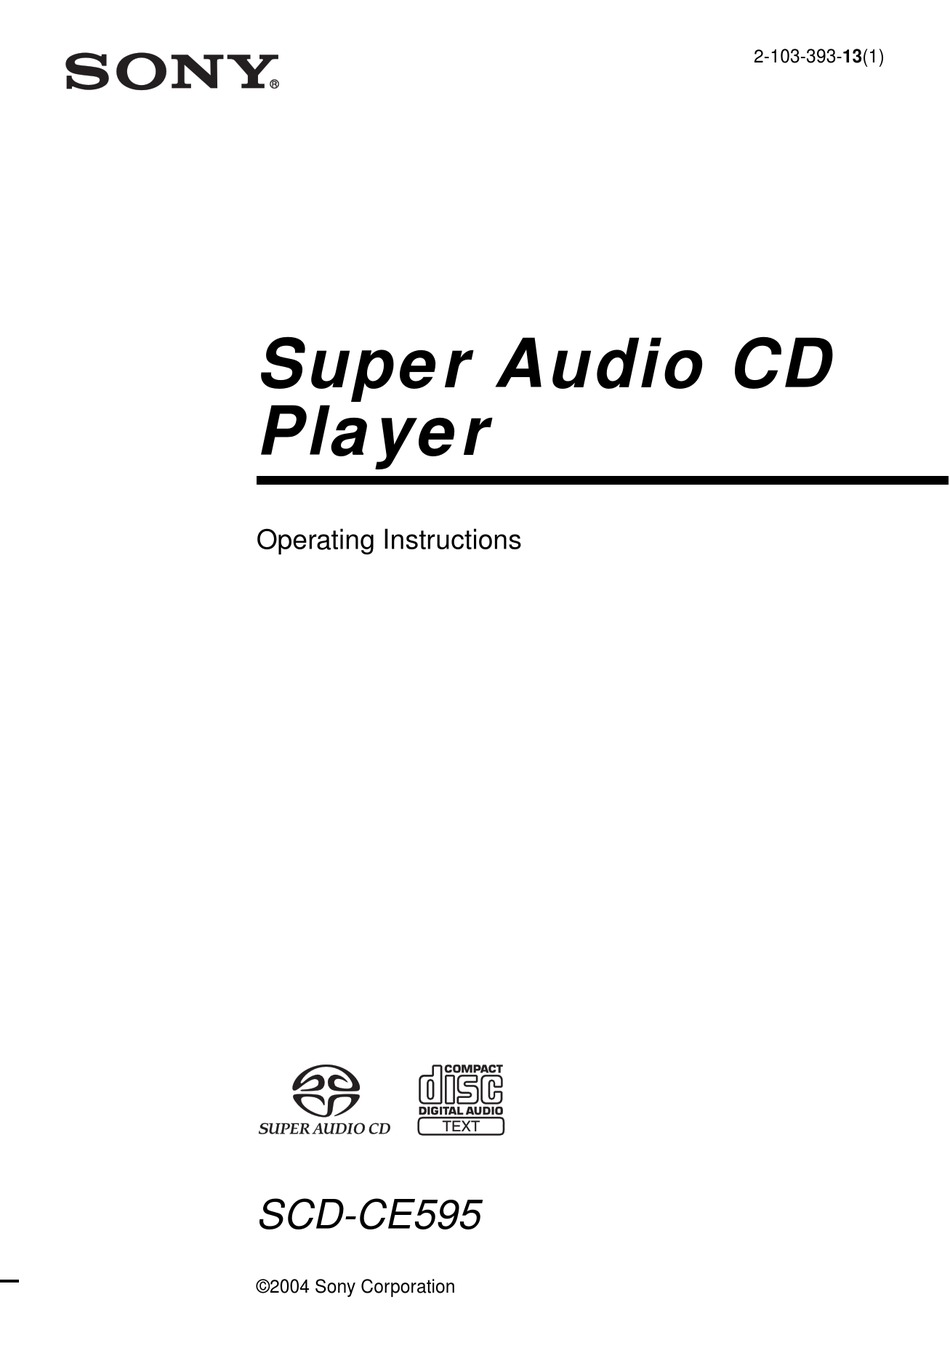 SONY SCD-CE595 OPERATING INSTRUCTIONS MANUAL Pdf Download